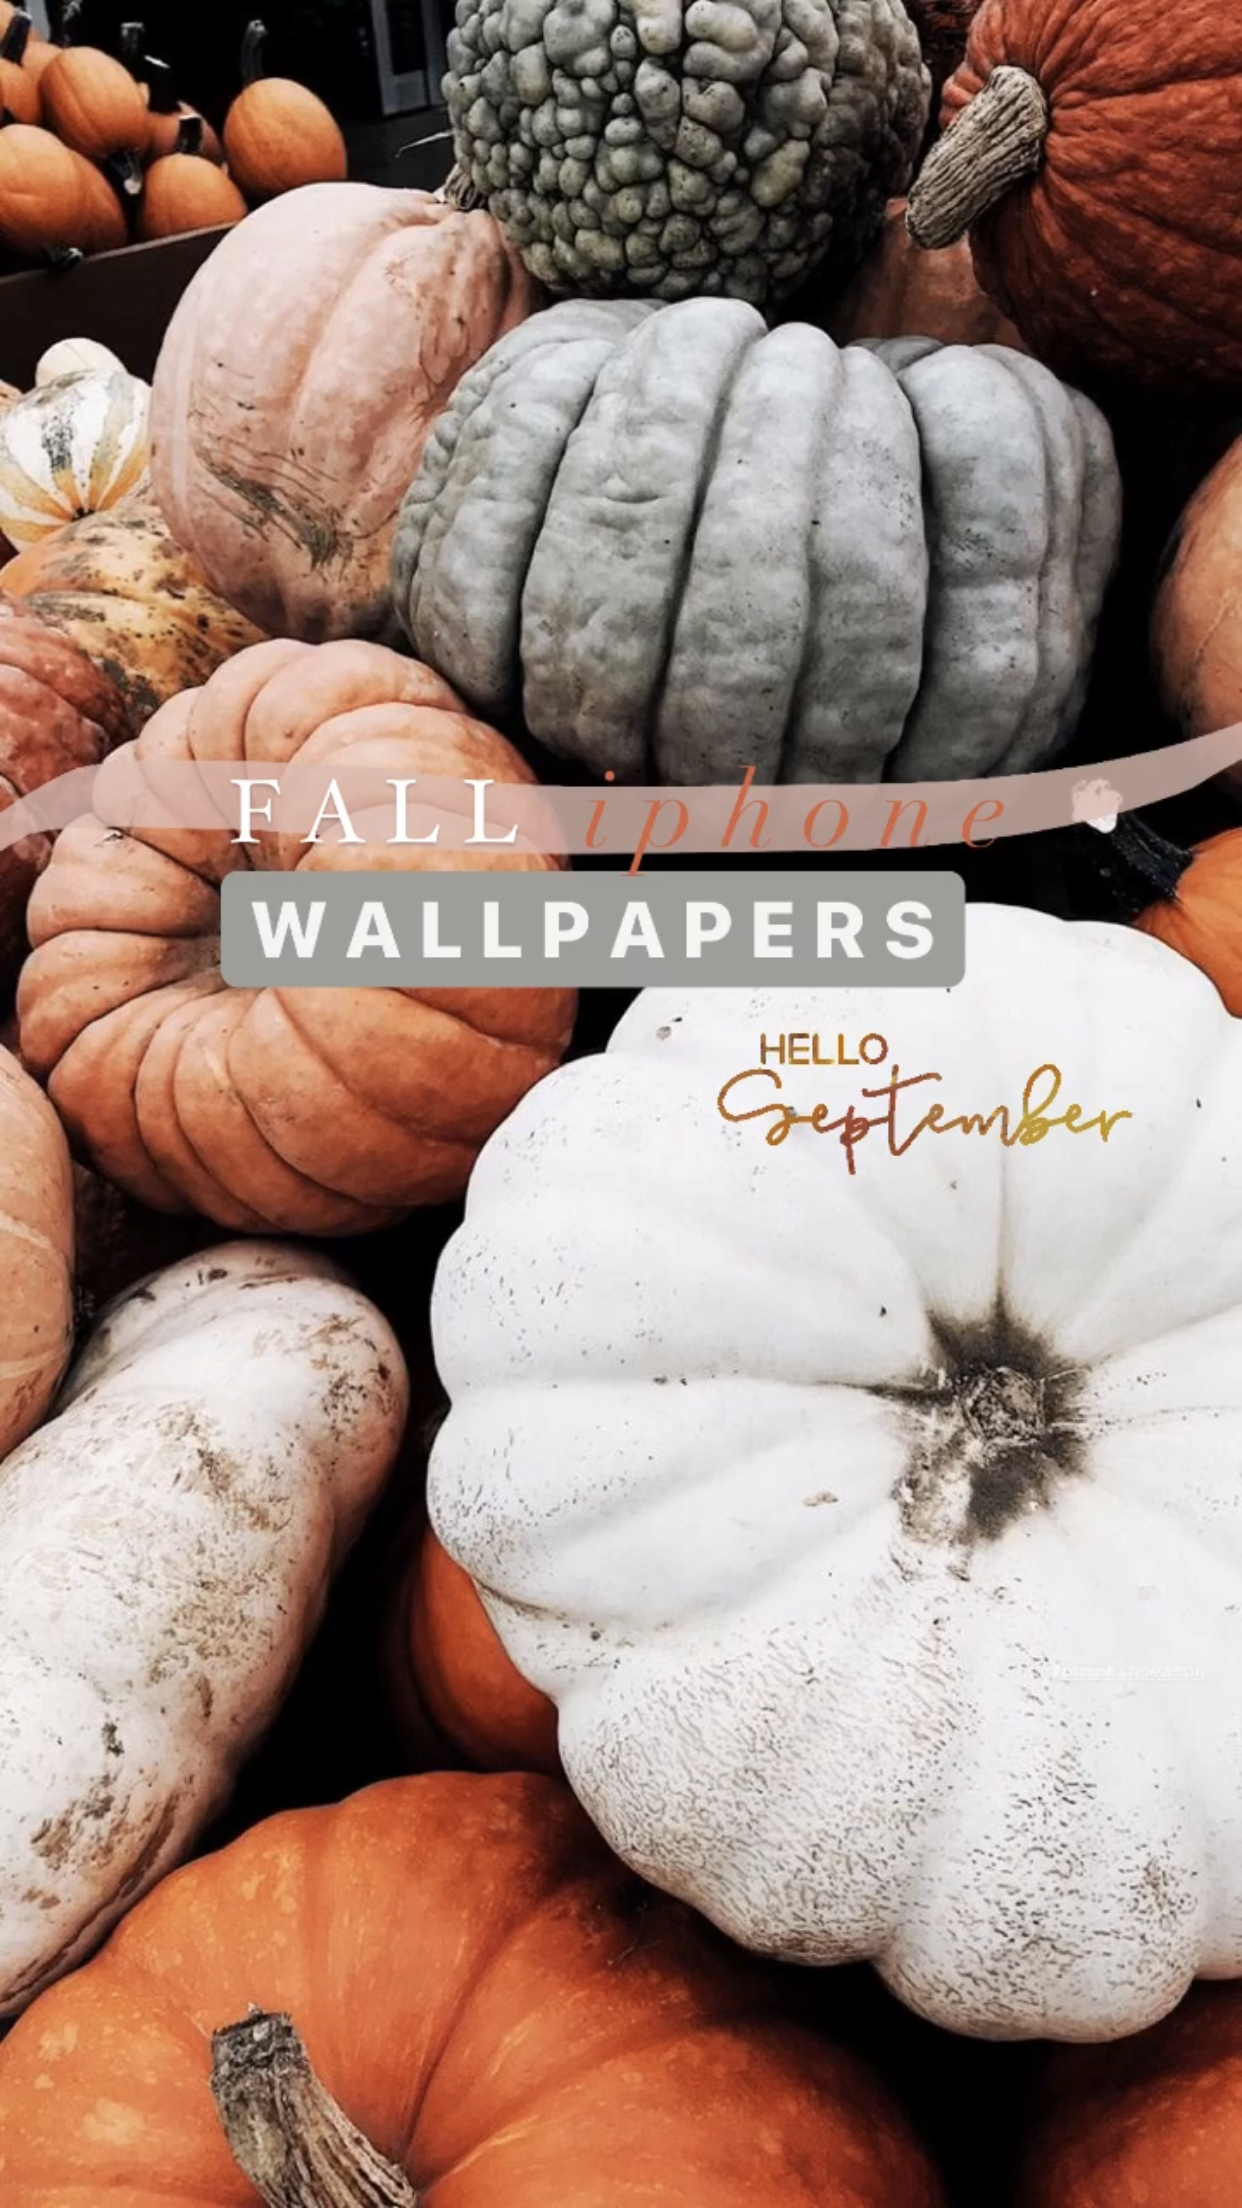 21 Aesthetic Fall Iphone Wallpapers You Need For Spooky Season Chasing Chelsea